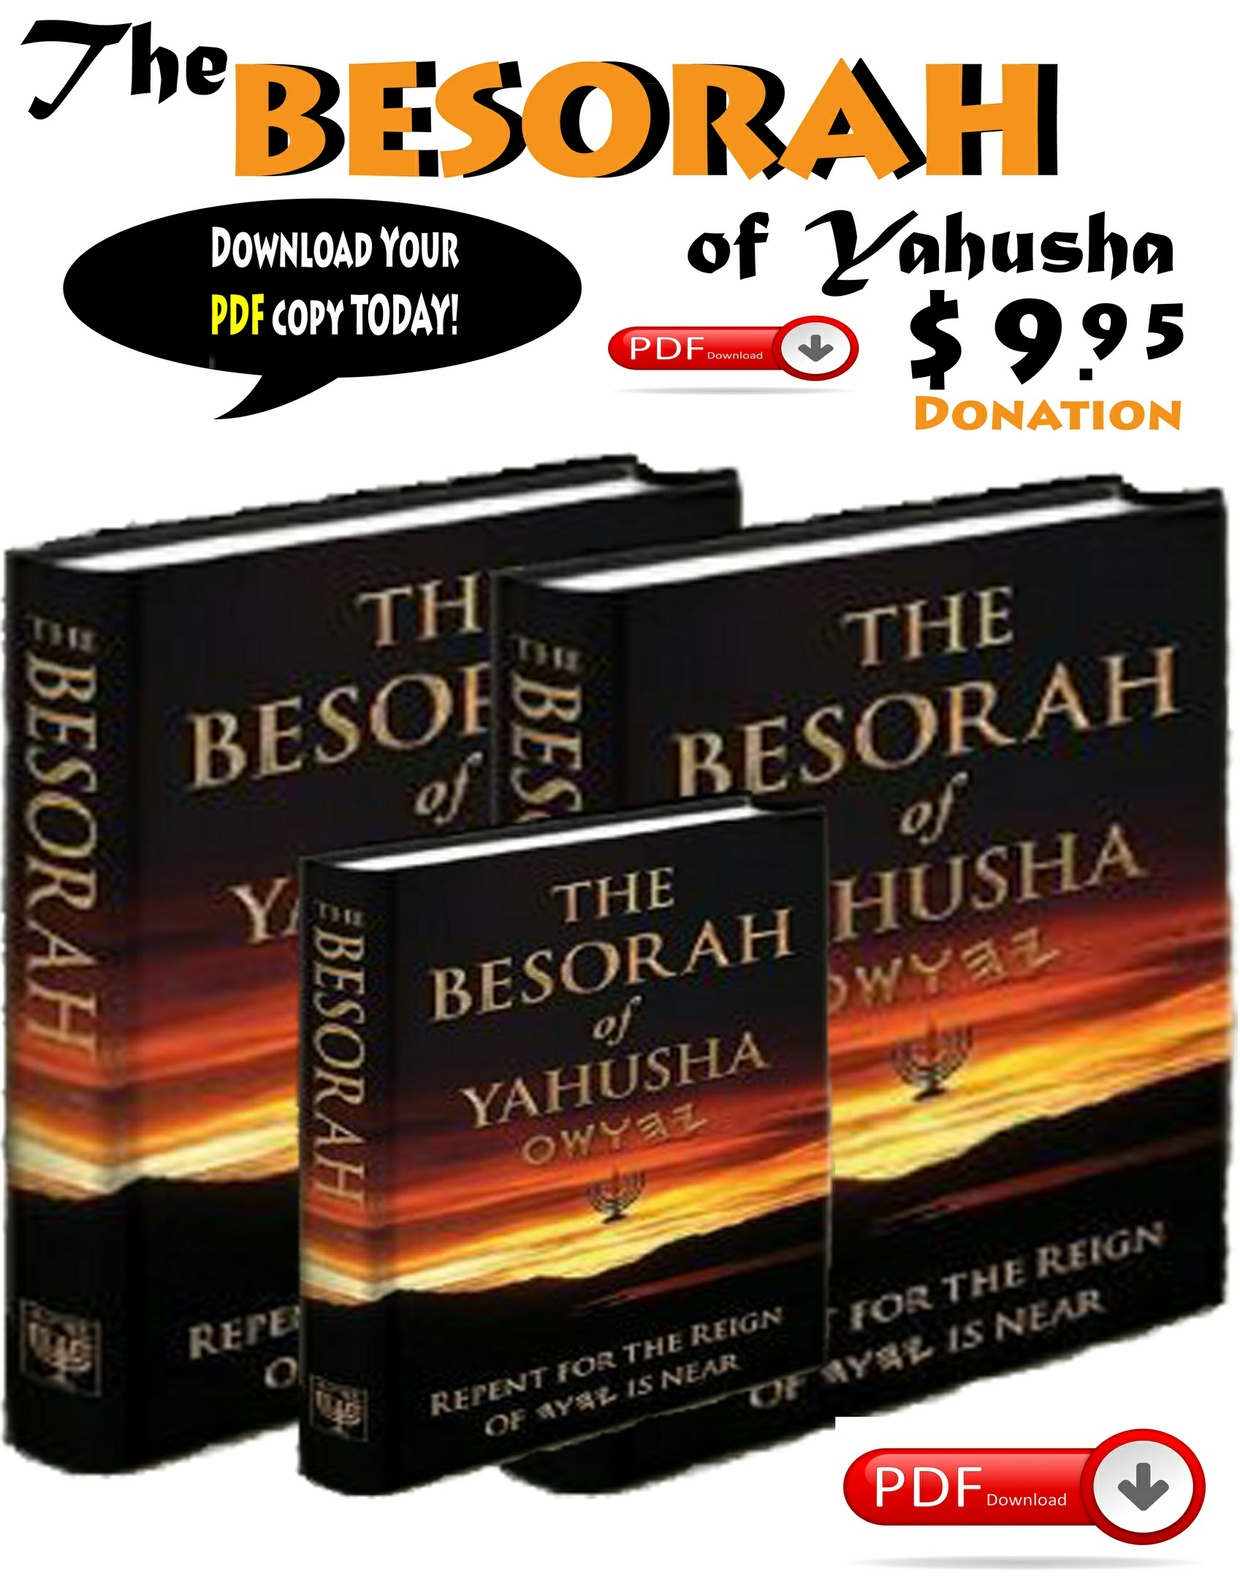 The Hebrew Besorah of Yahusha the Good News for the End Times!